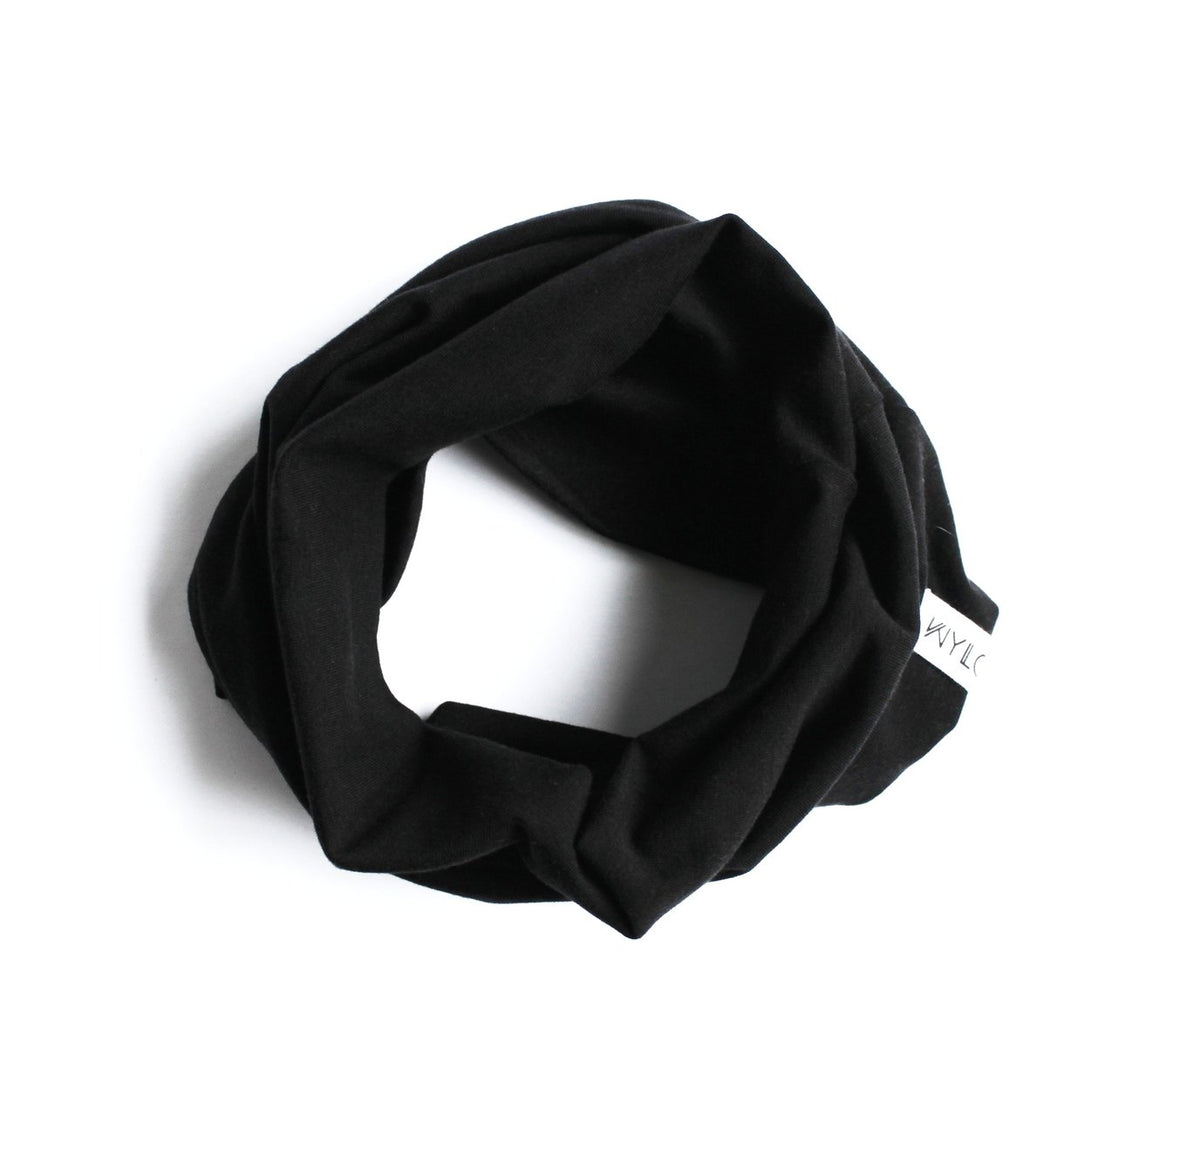 Infinity scarf for kids, made with 100% organic bamboo. Perfect accessory to complement your kids outfit during those chilly days.